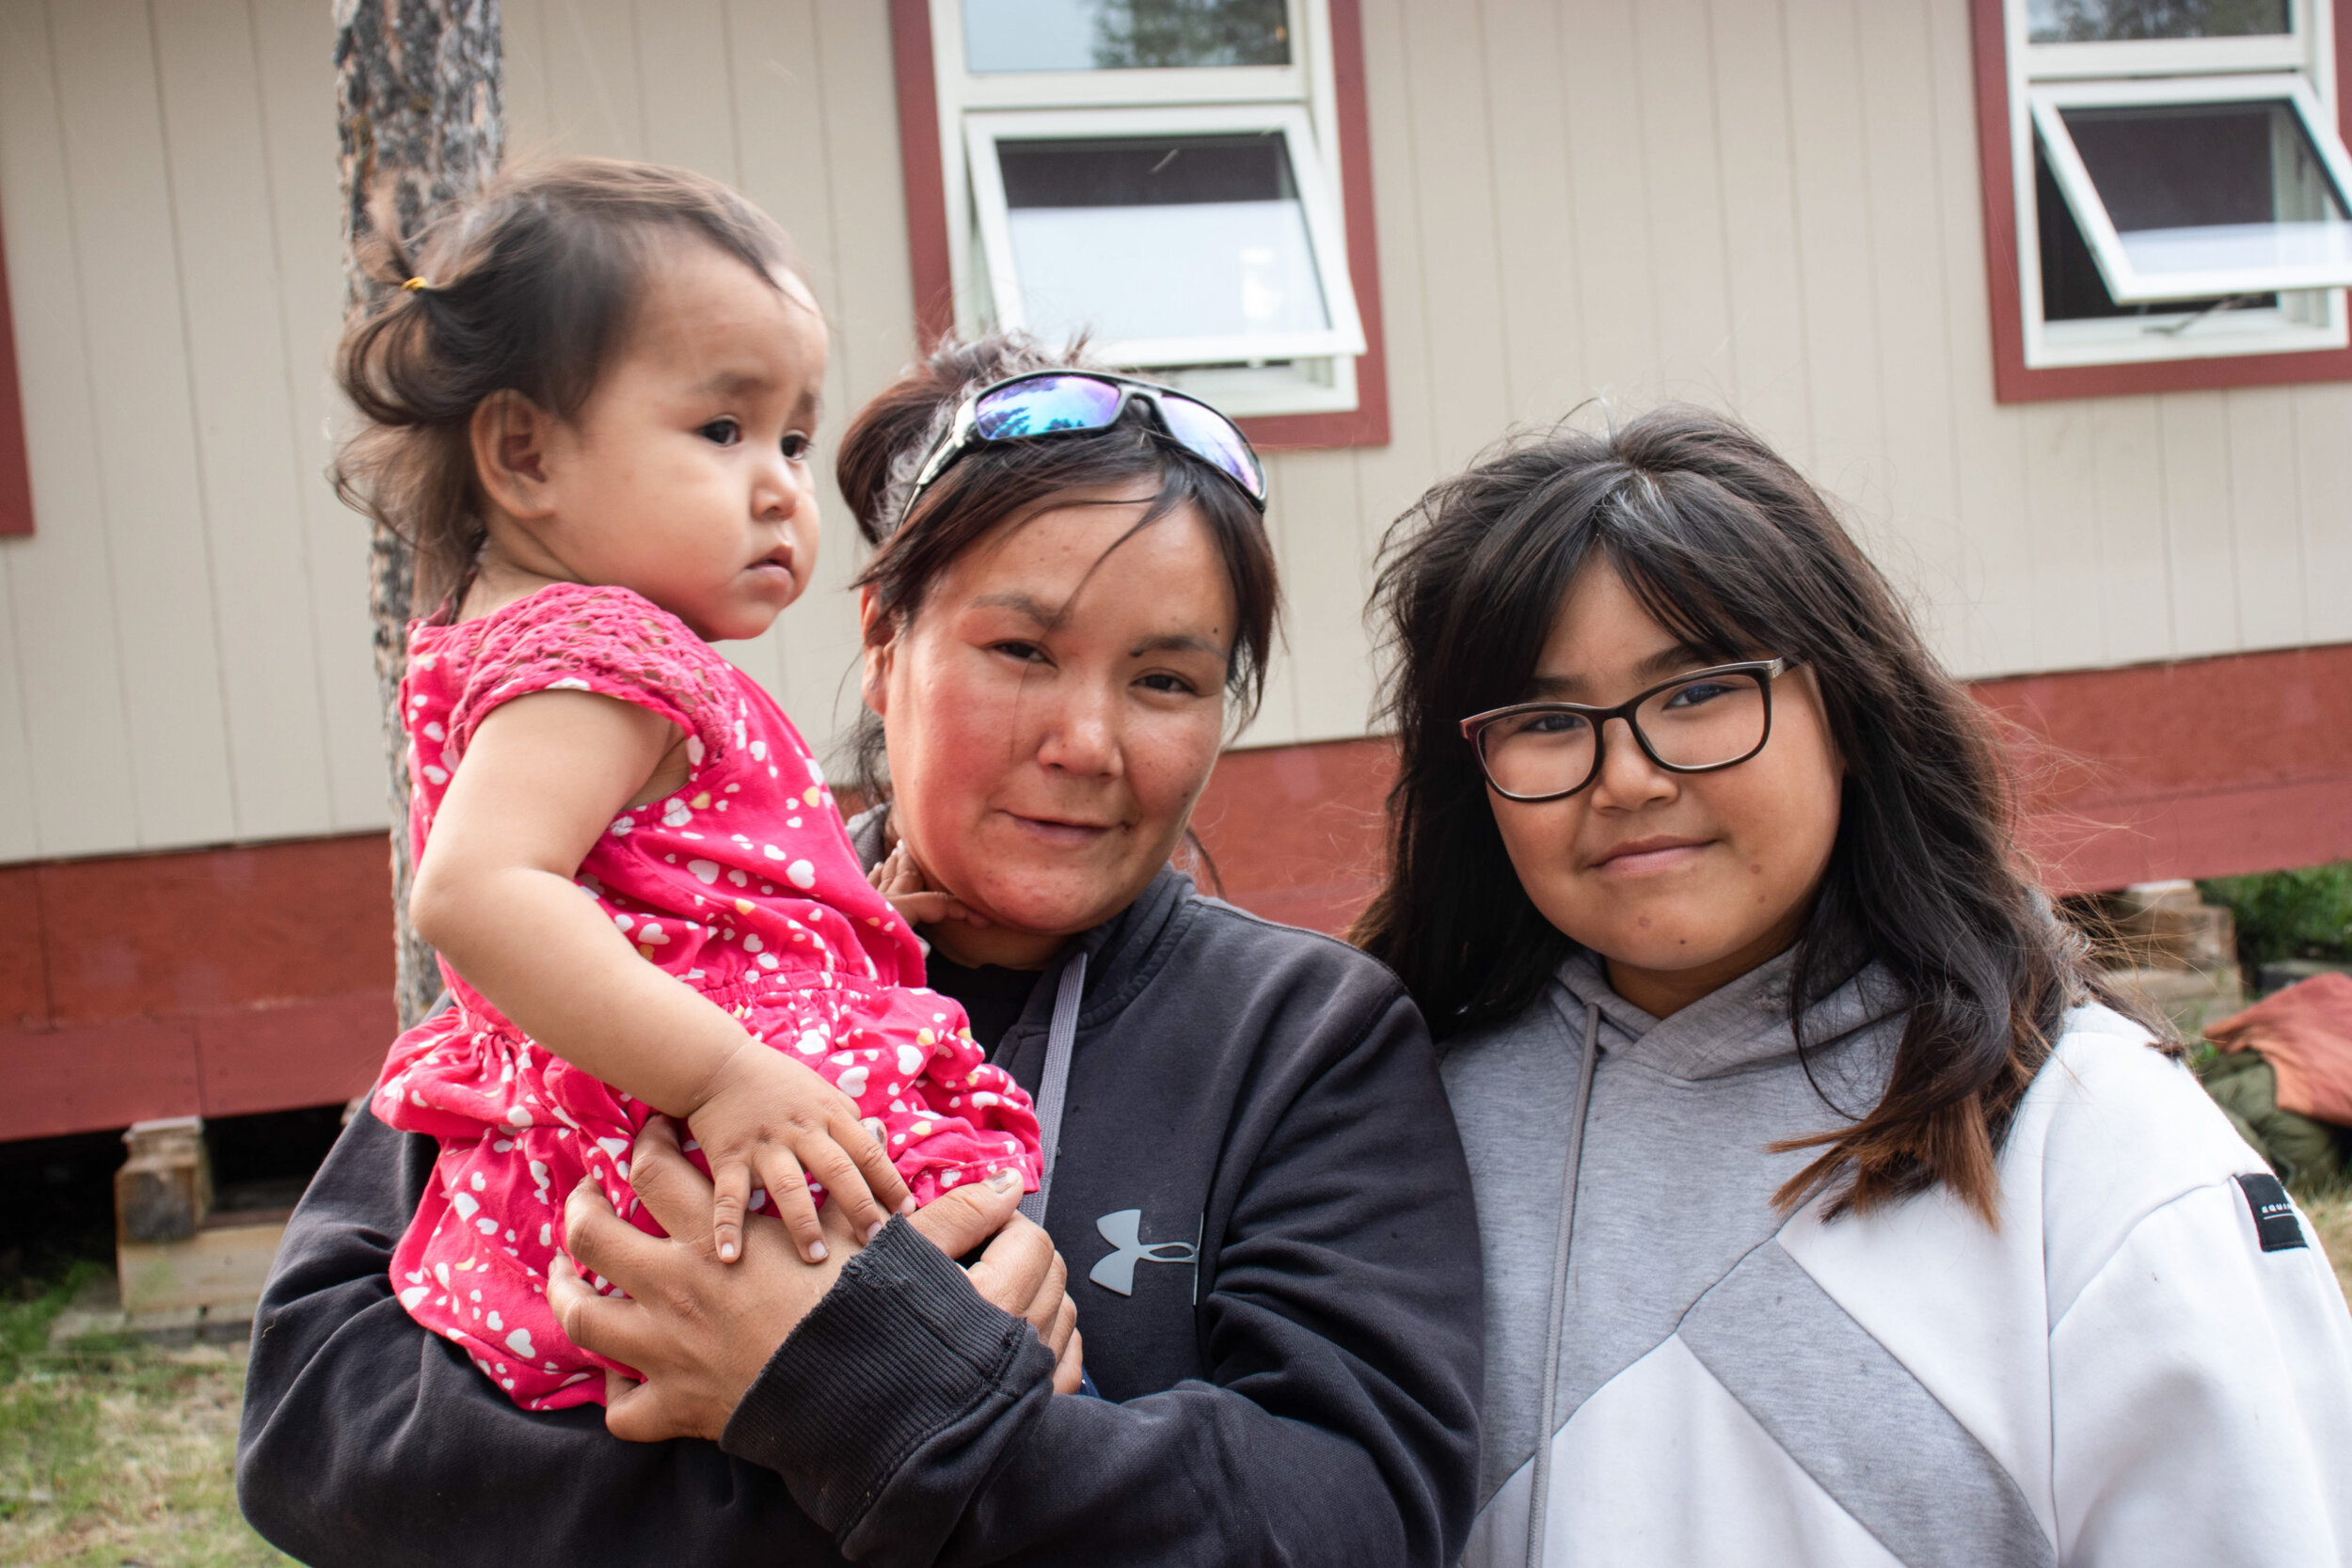 Crystal often gets to spend time with her biological mother, Anna Taureau. The two are pictured above with Anna's 18-month-old daughter, Kylie. (Photo: KC Hoard)